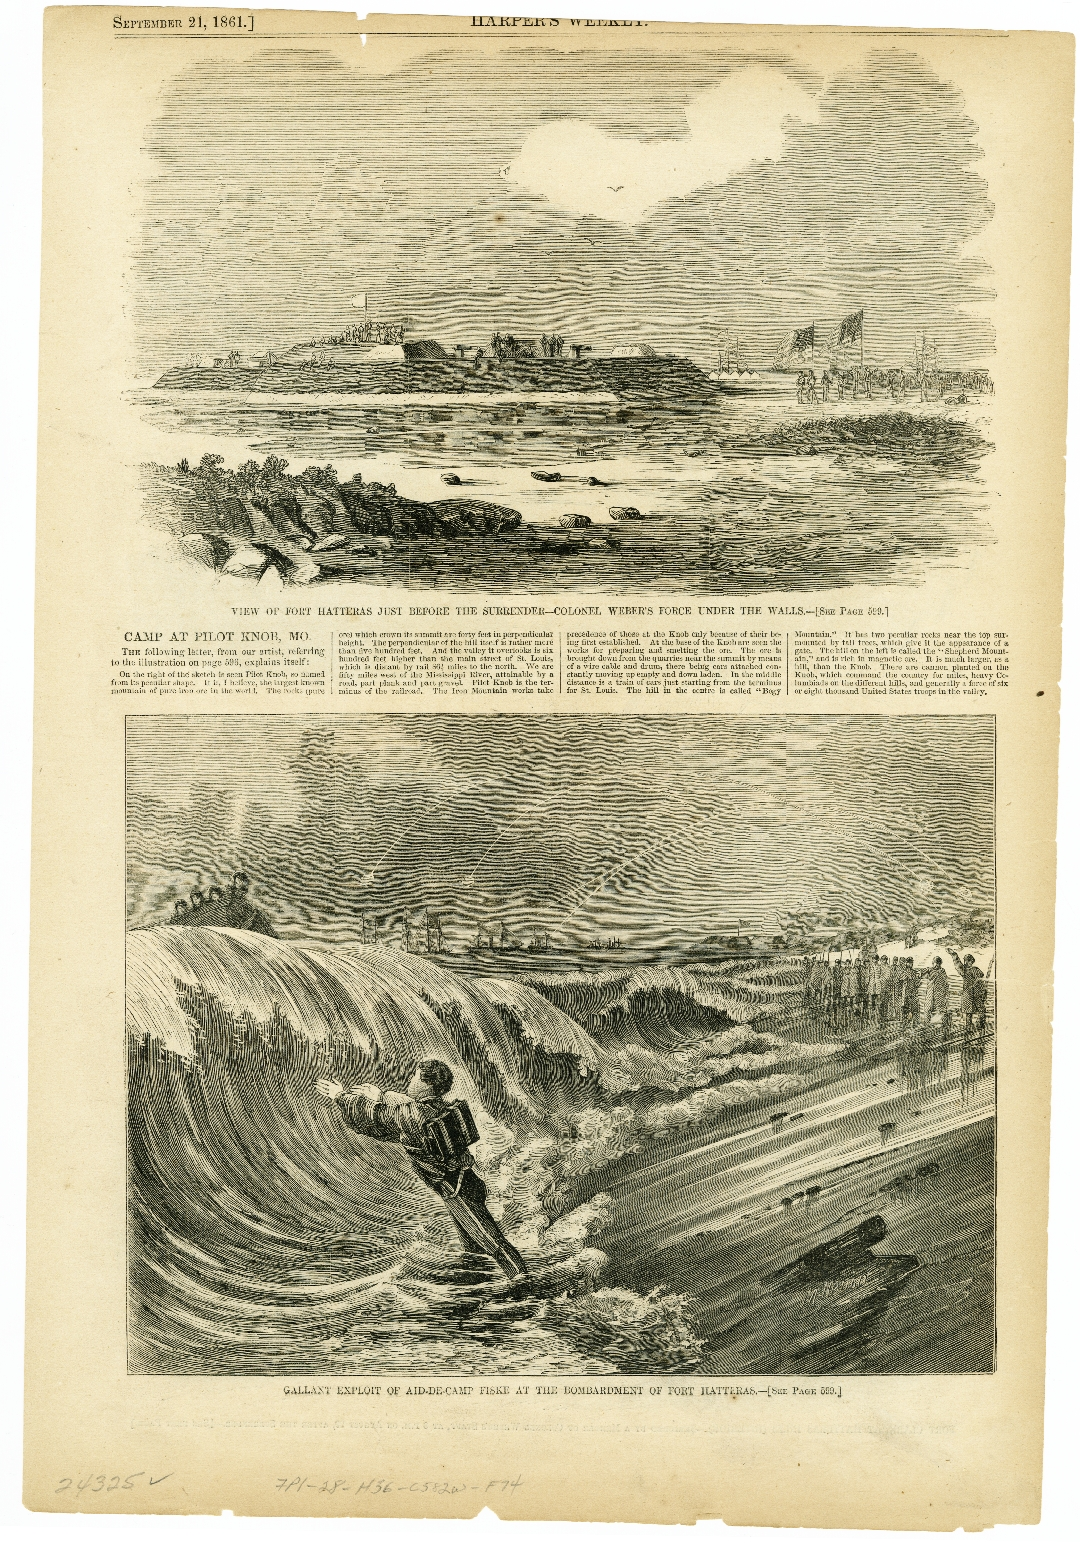 21 September 1861: Harper's Weekly reports on Forts Hatteras and